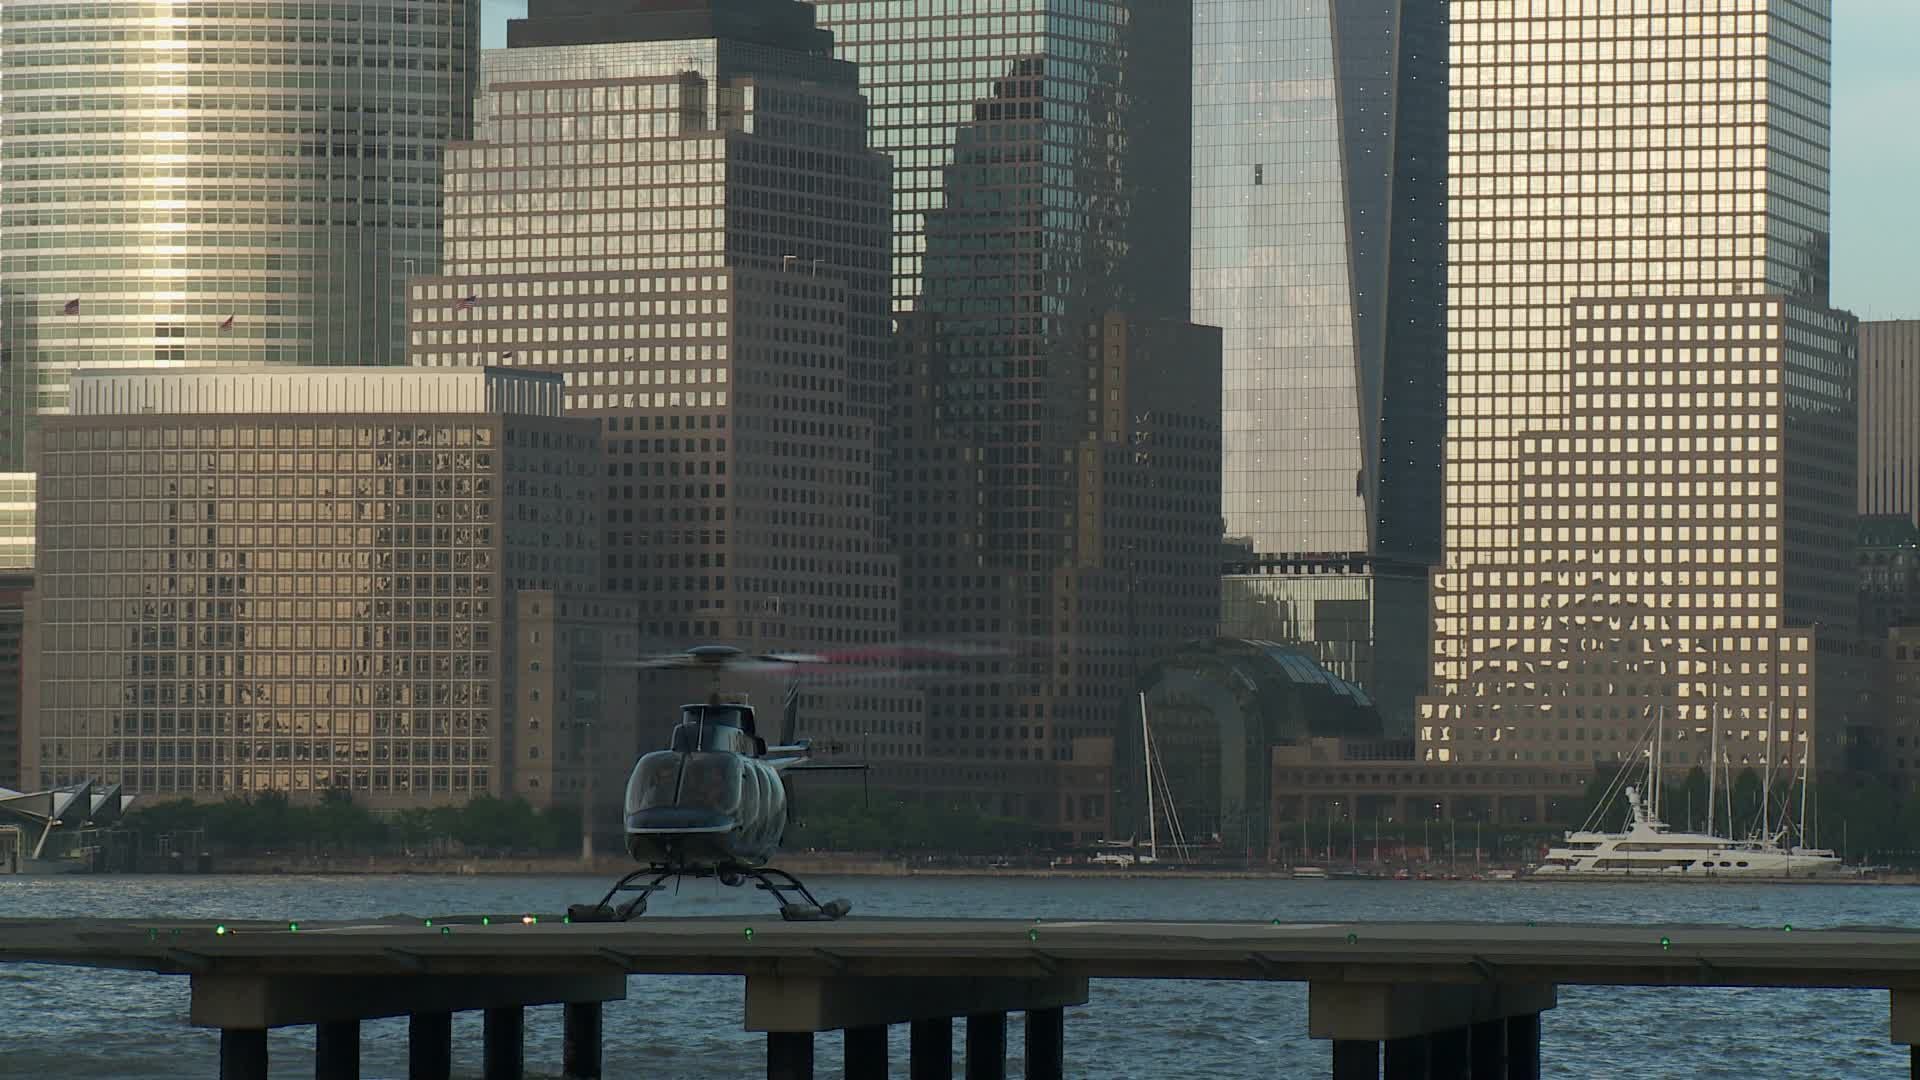 Paulus Hook Pier Heliport 8 Stock Footage By Cholmesphoto Jersey City June 23 A Helicopter Takes Off At The Paulus Hook Stock Video Stock Footage Pier